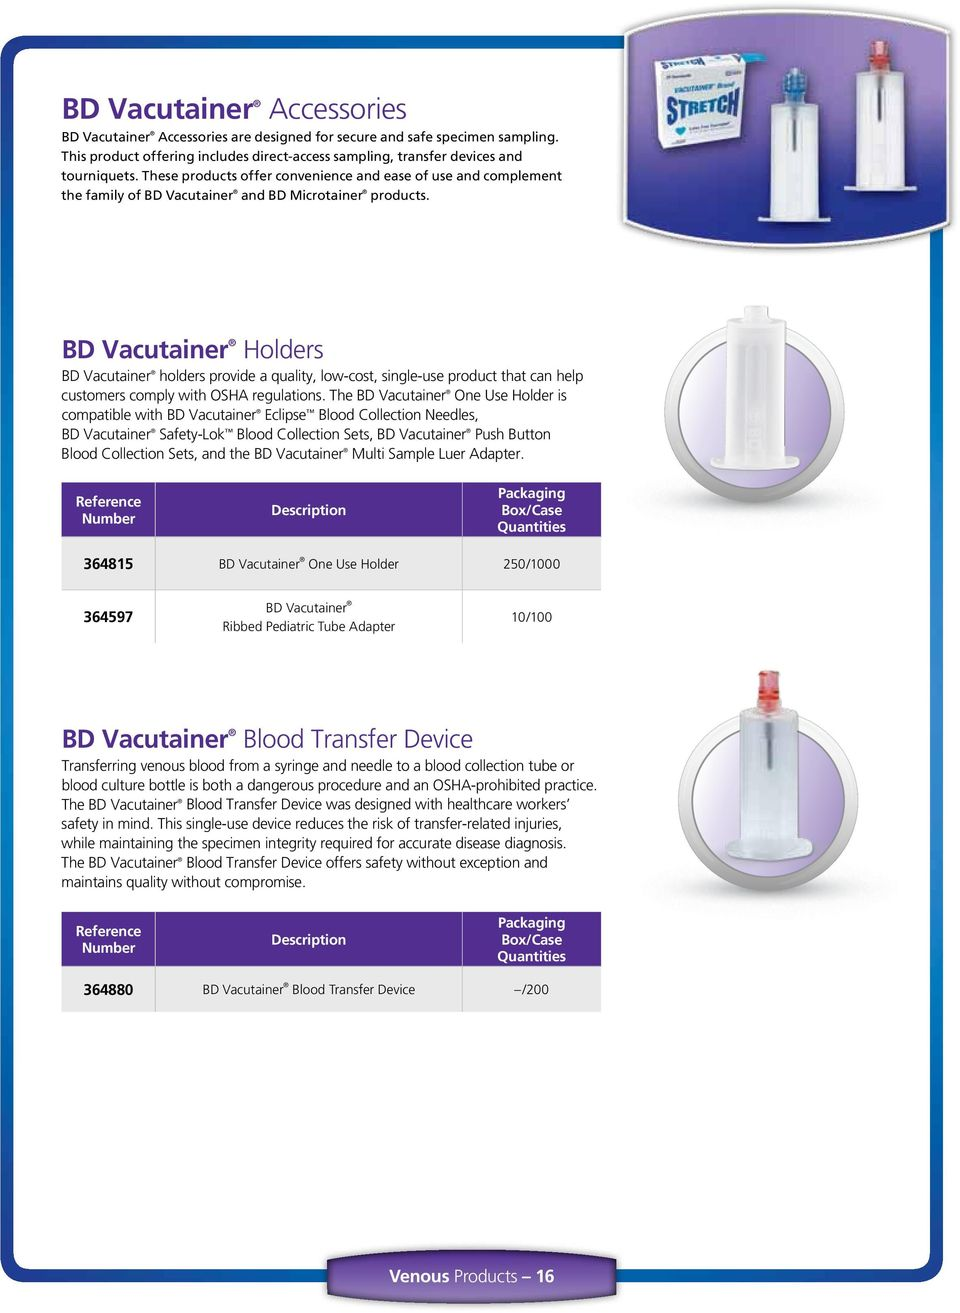 BD Vacutainer Holders BD Vacutainer holders provide a quality, low-cost, single-use product that can help customers comply with OSHA regulations.